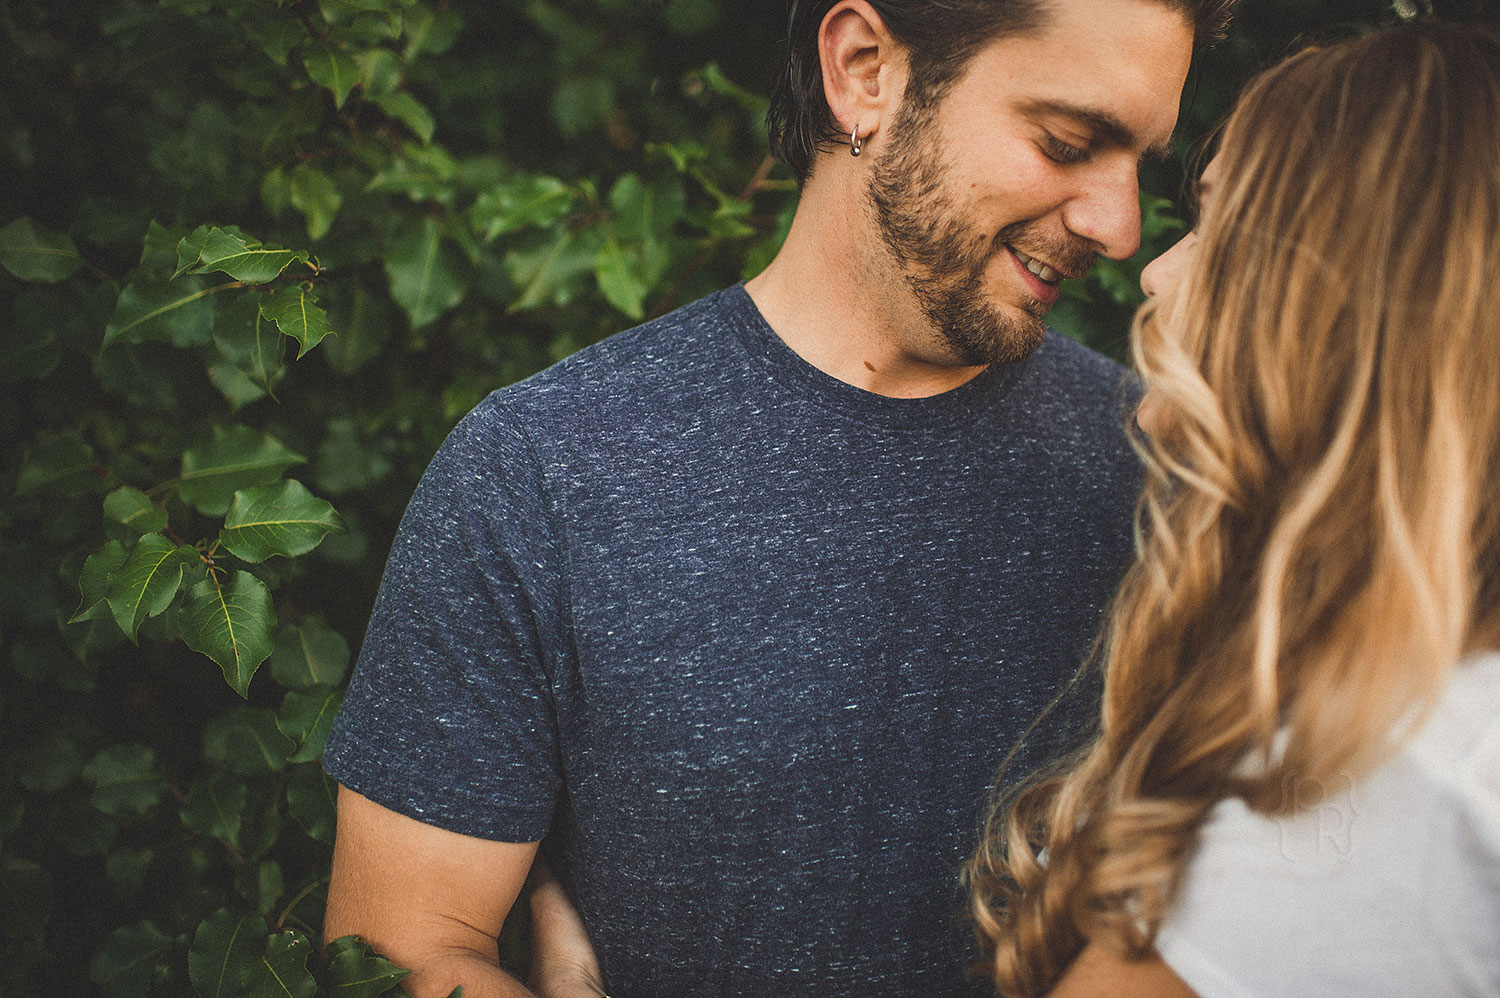 pat-robinson-photography-wilmington-engagement-session-19.jpg